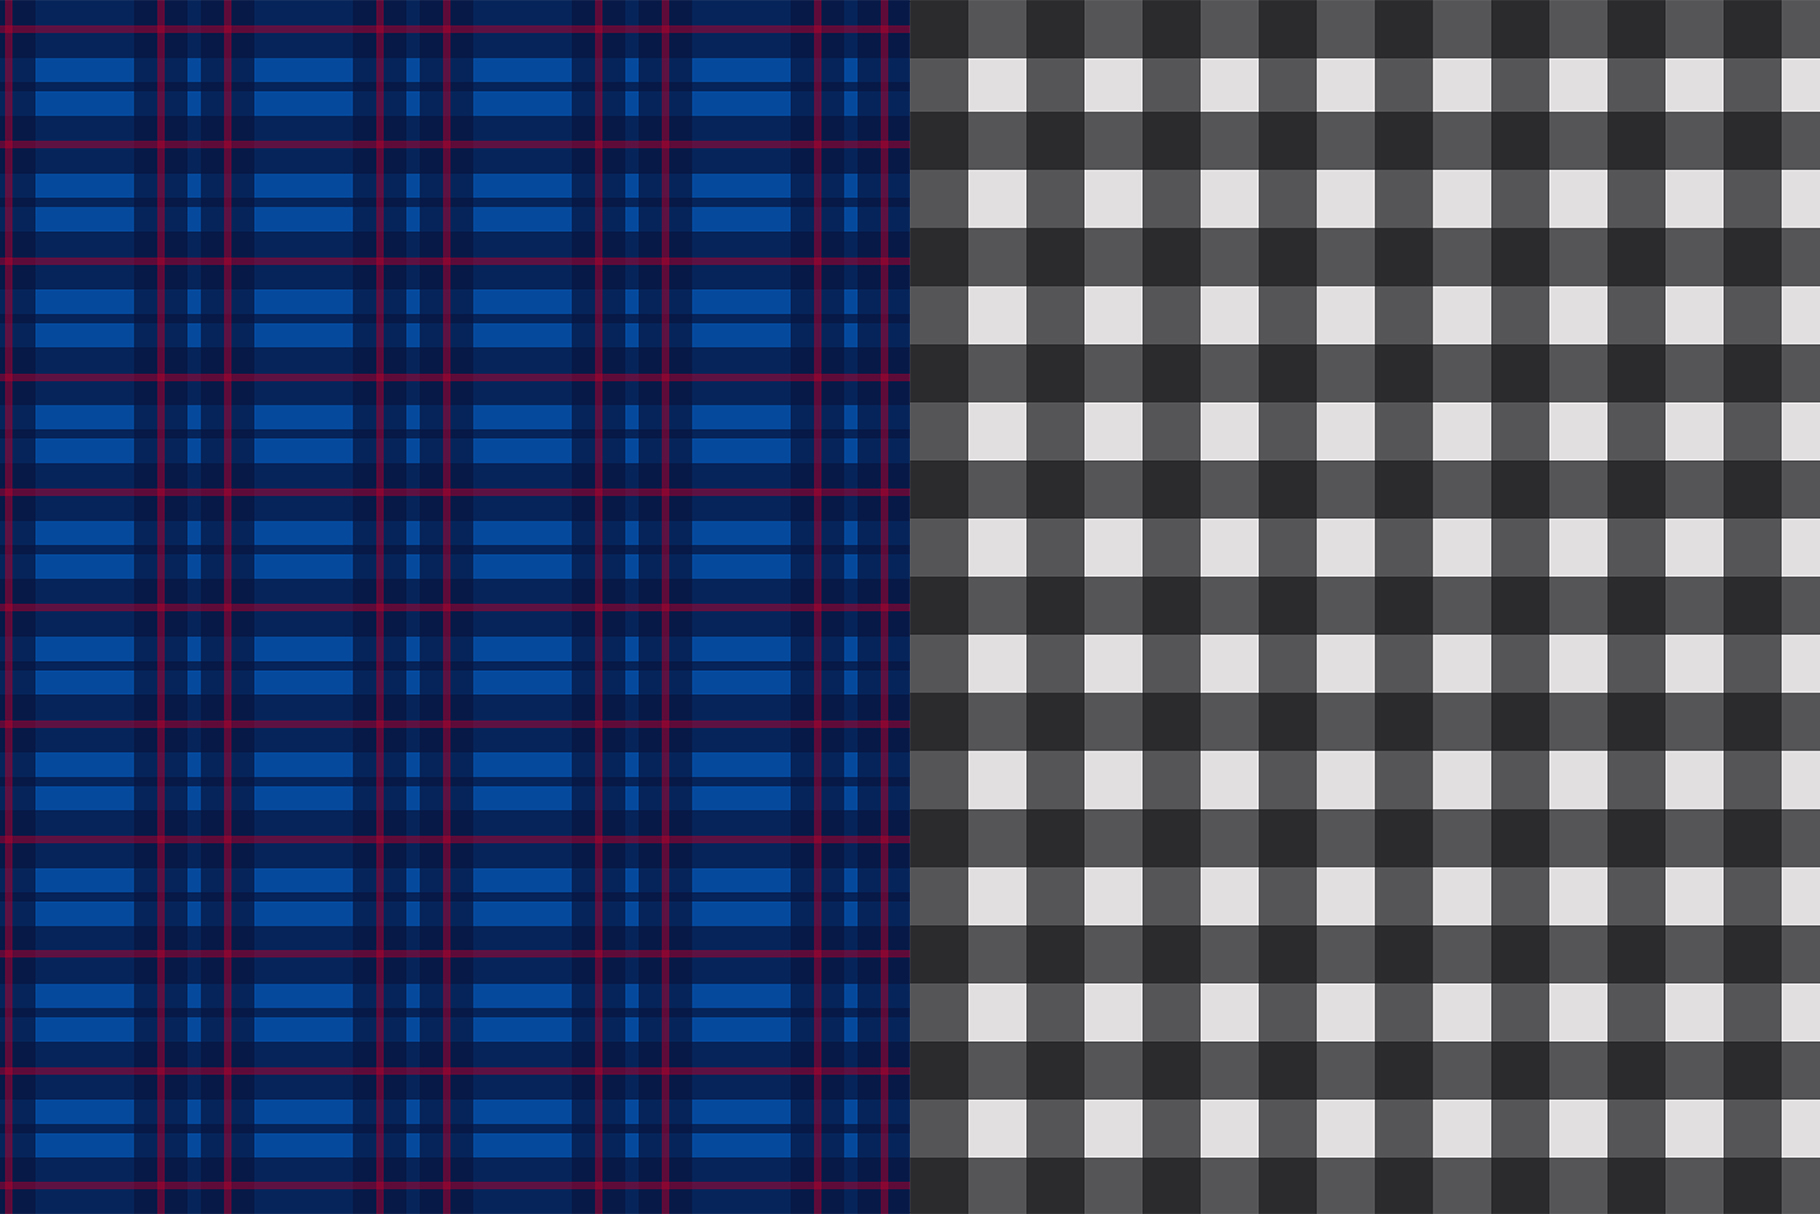 10 Checkered Patterns example image 7